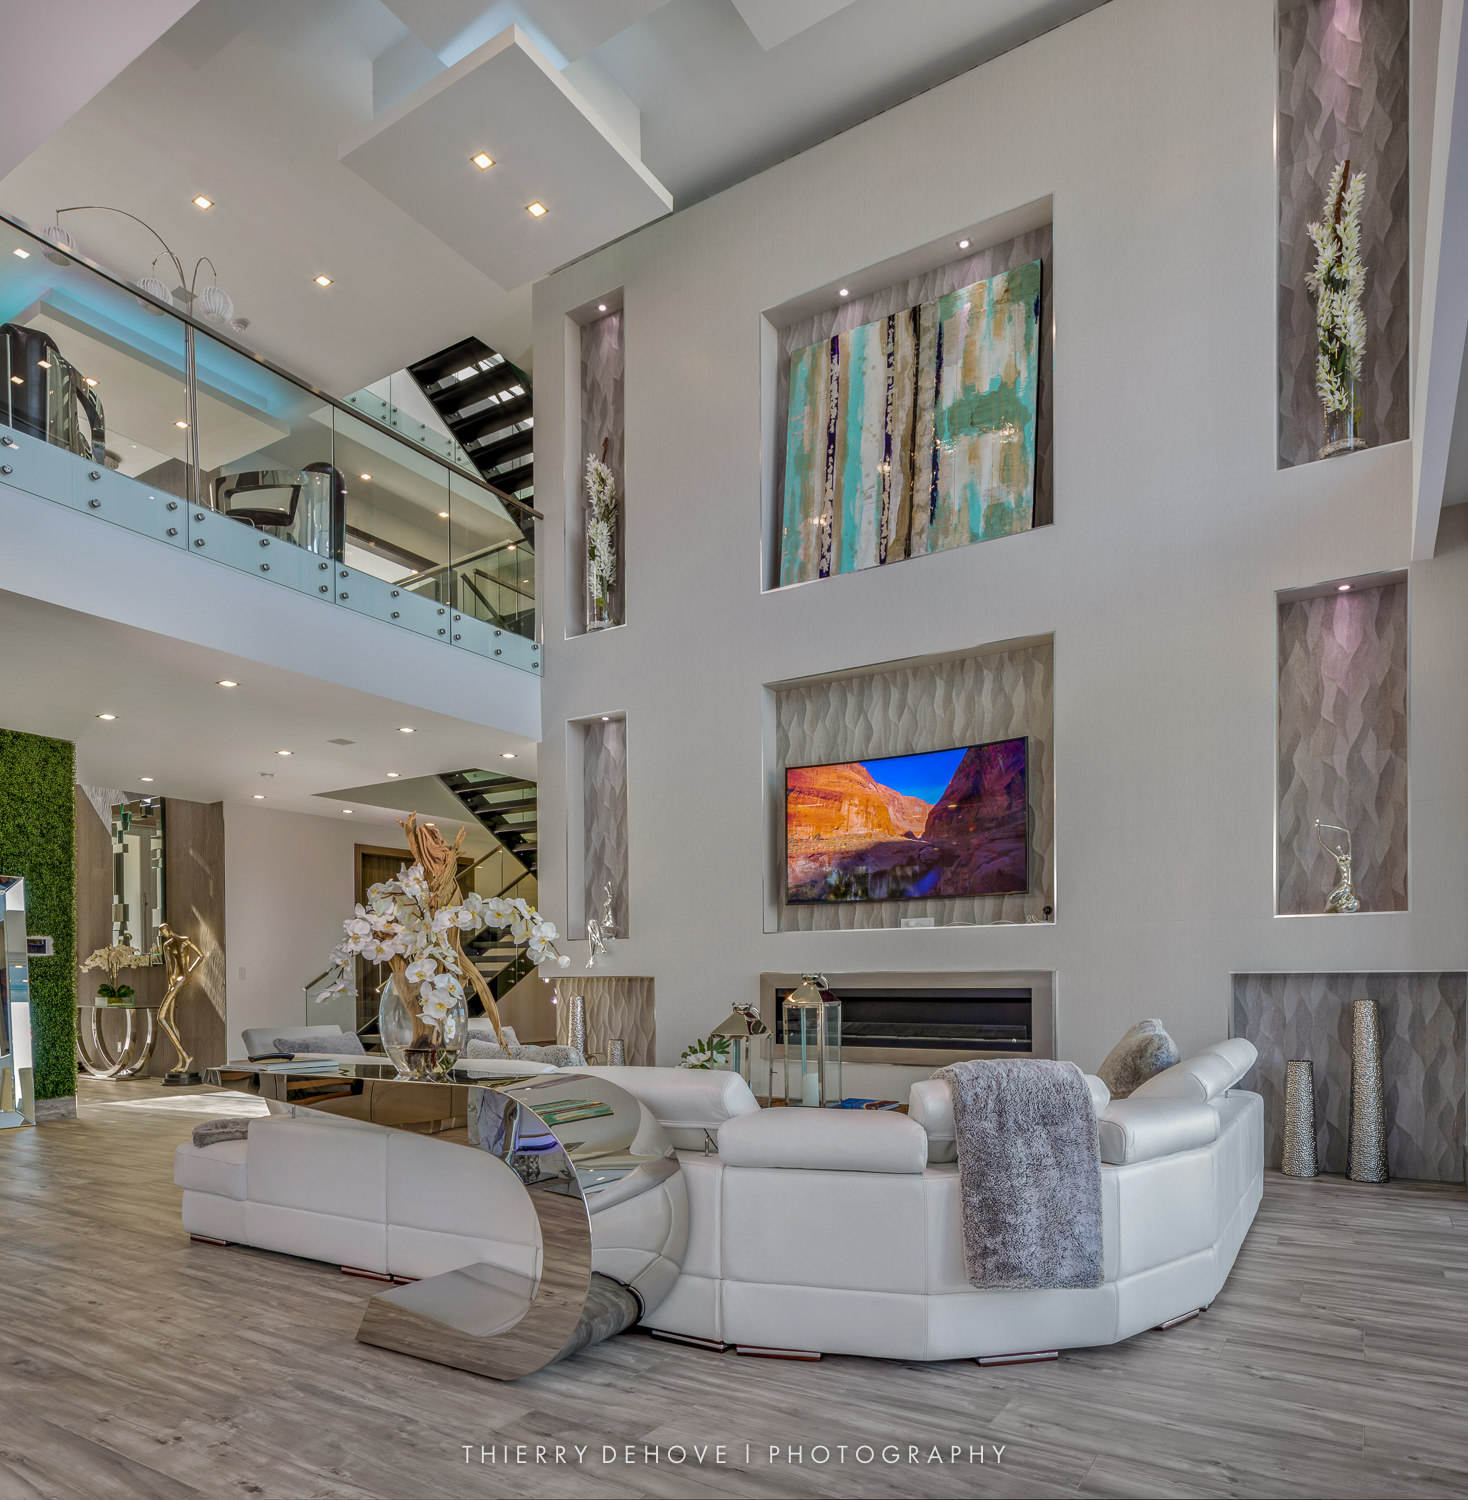 Beautiful Home Interior Design Photography In Fort Lauderdale